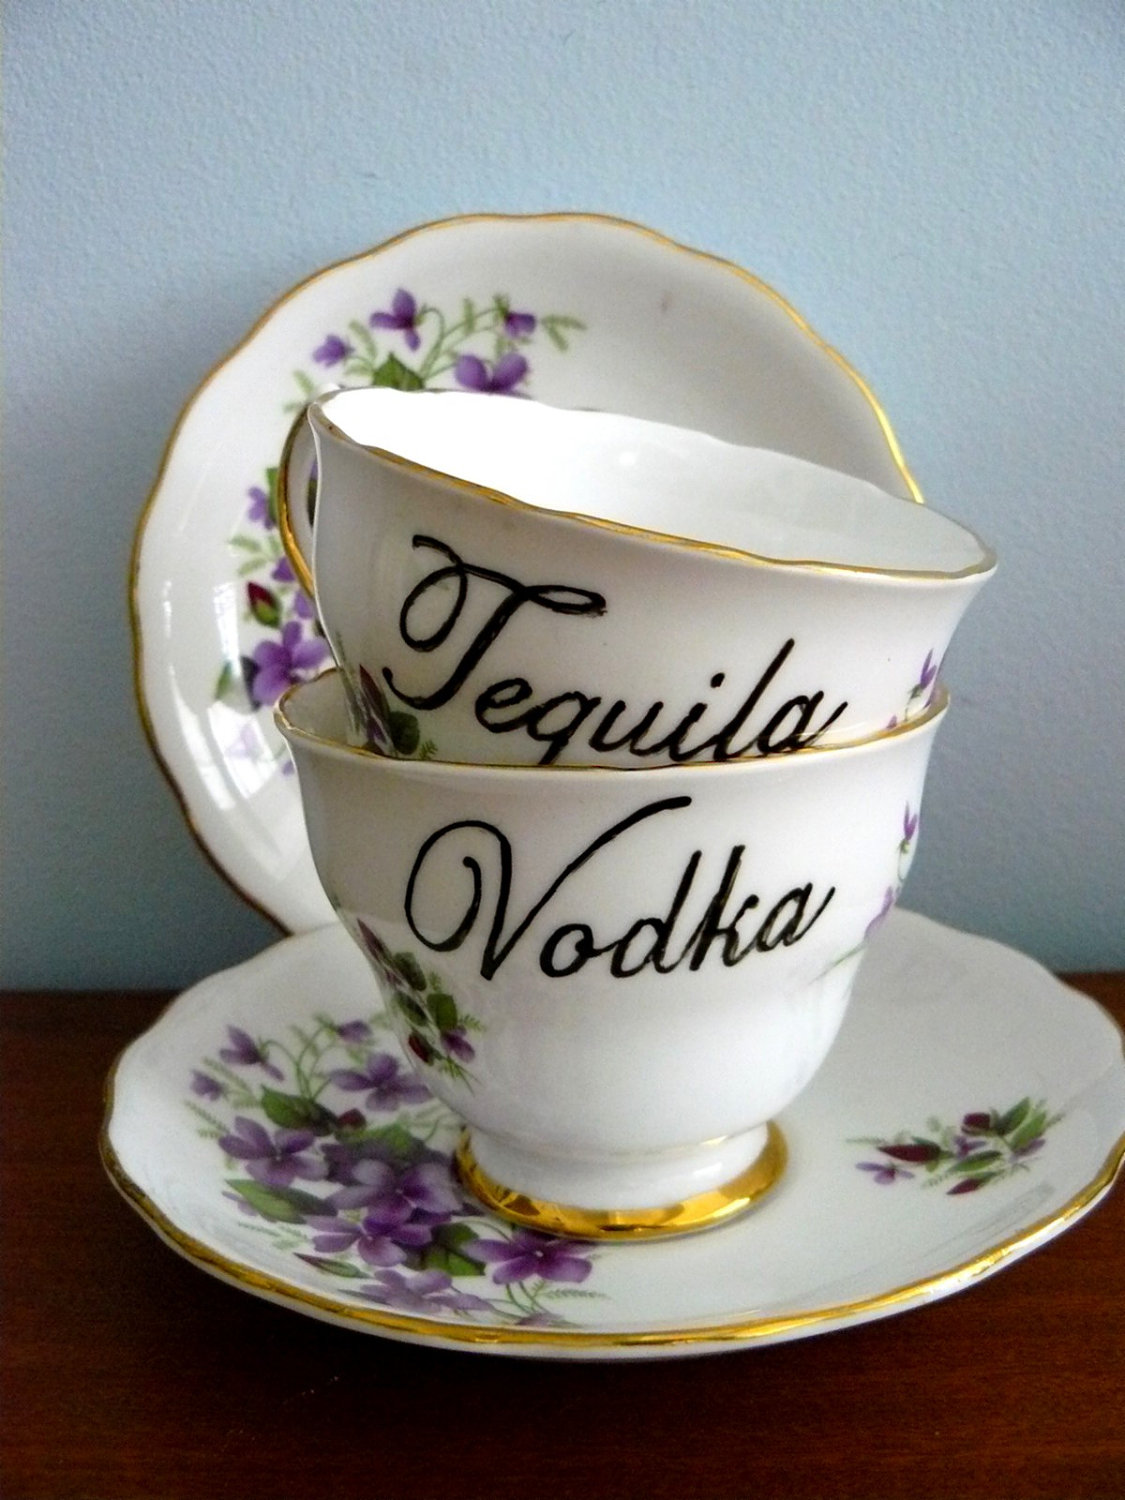 Tequila and Vodka